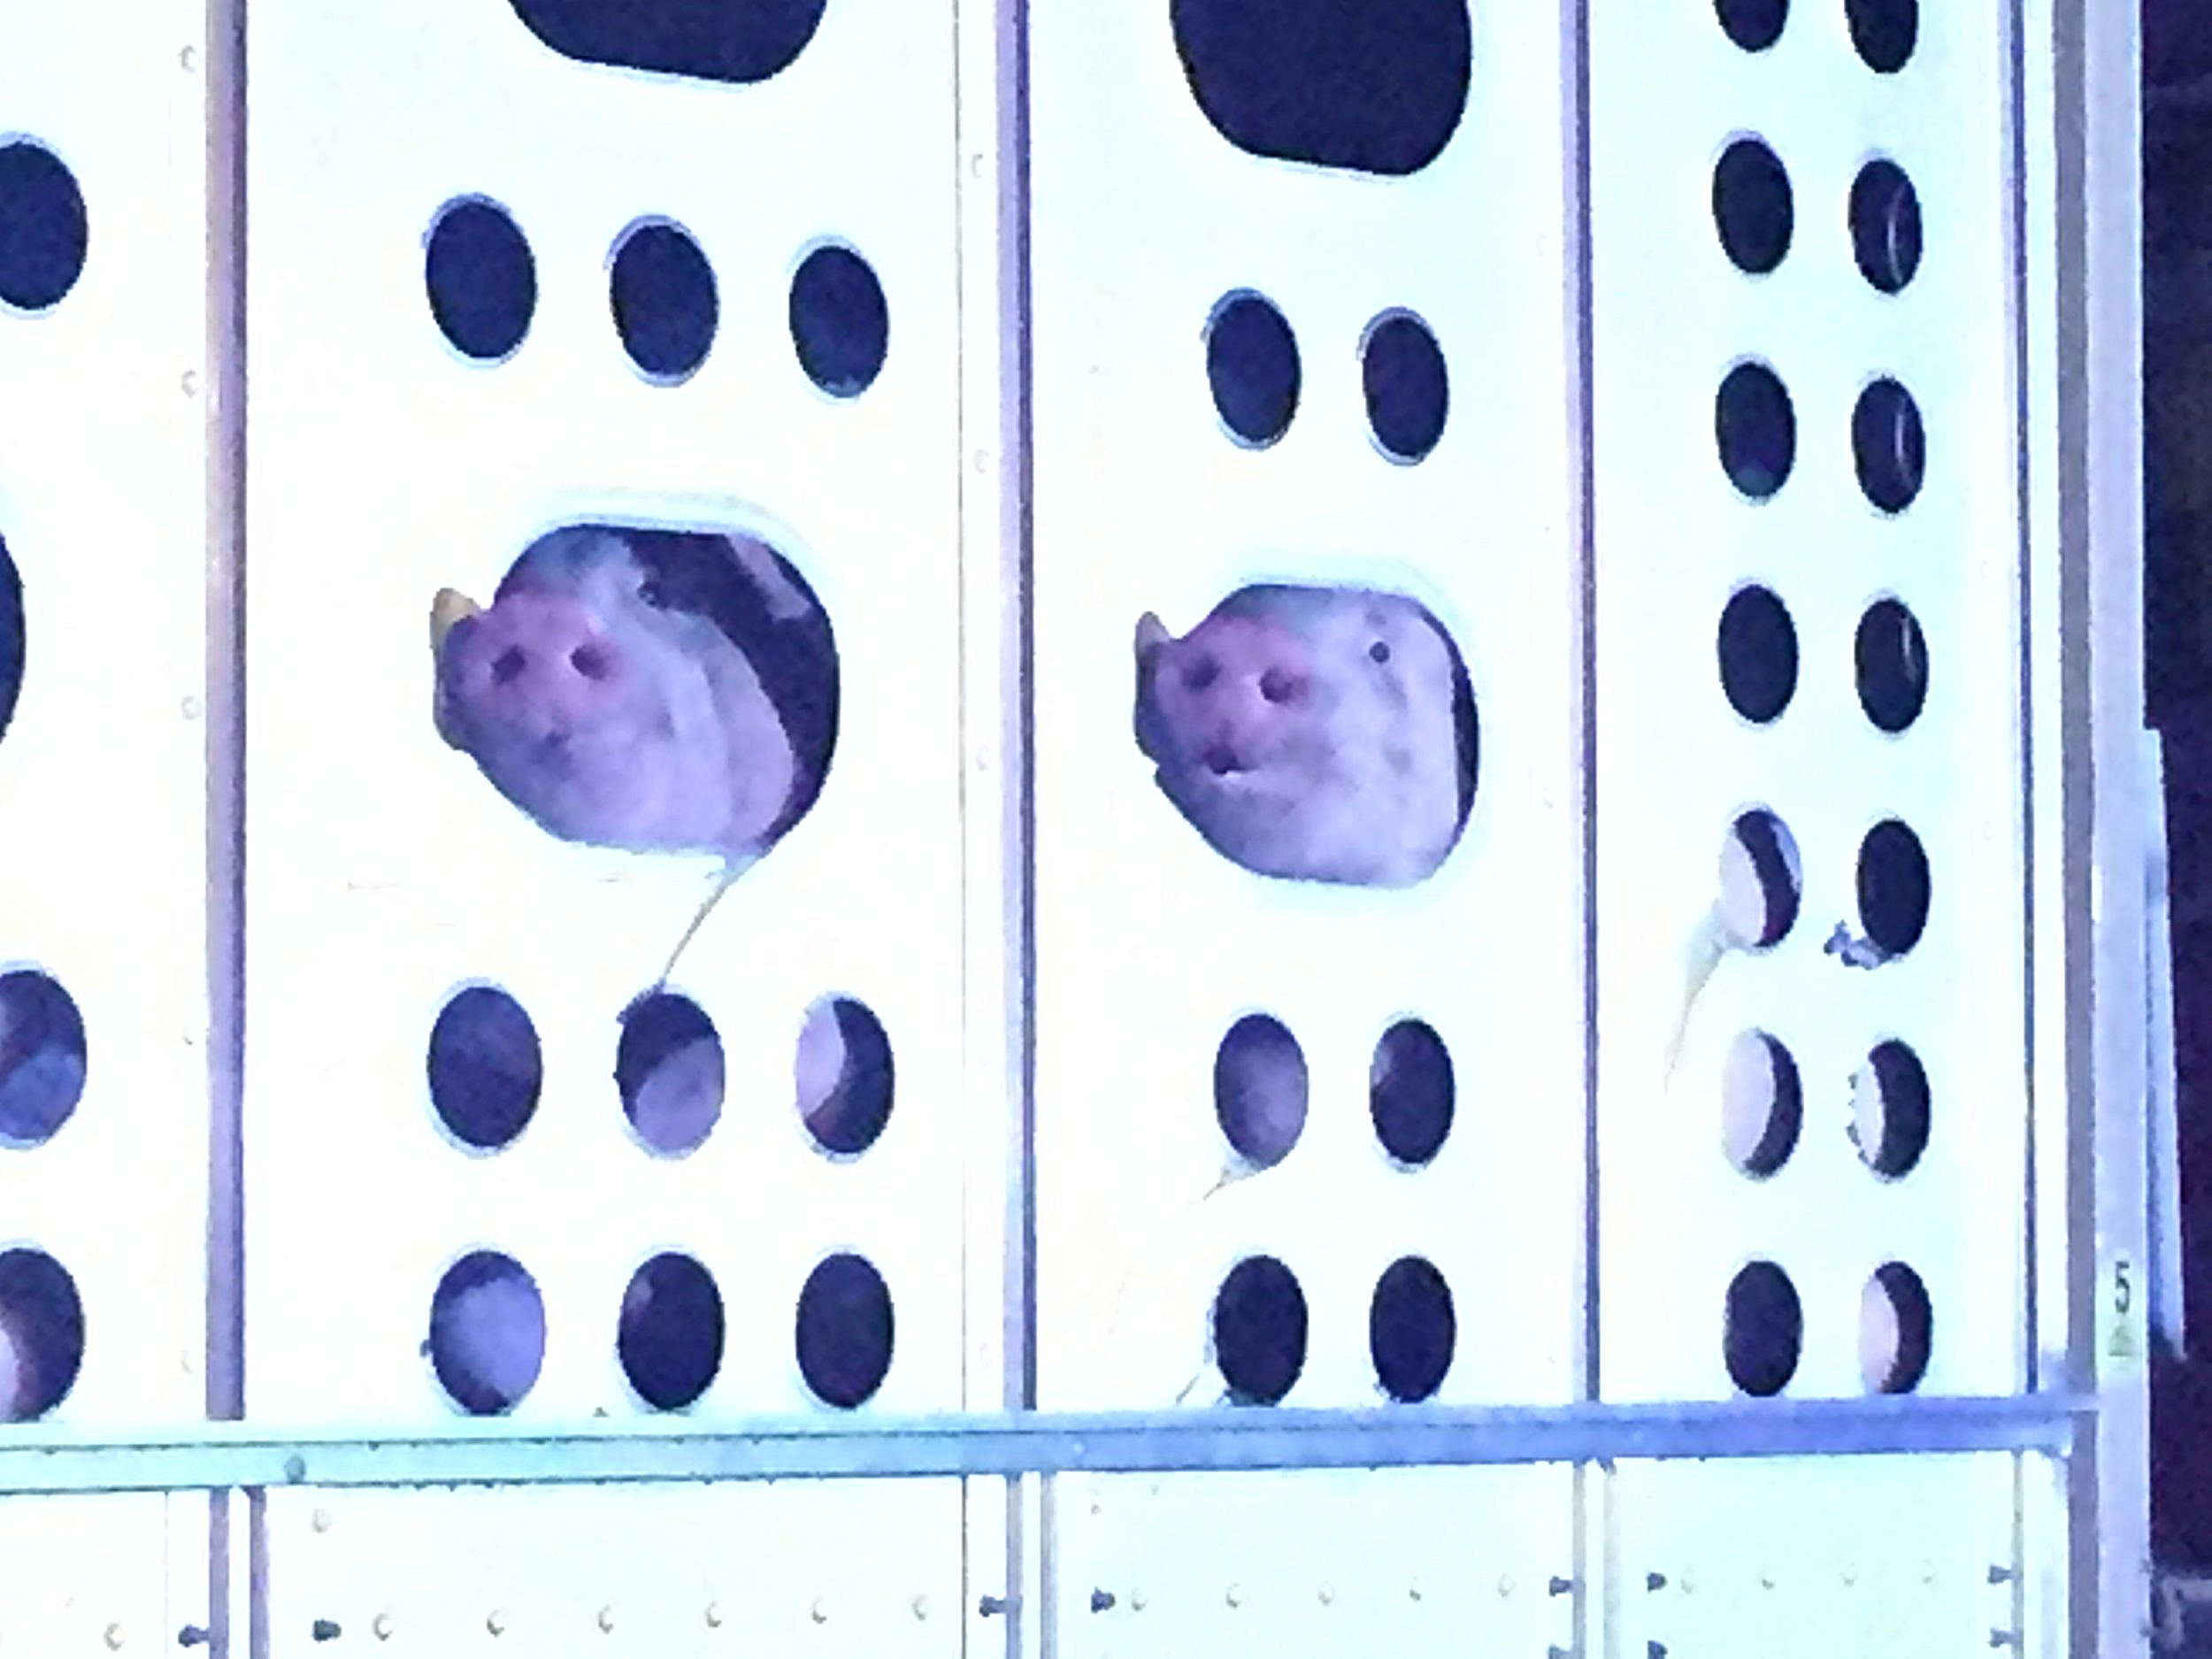 Two pigs peering out of ventilation holes seeking mercy